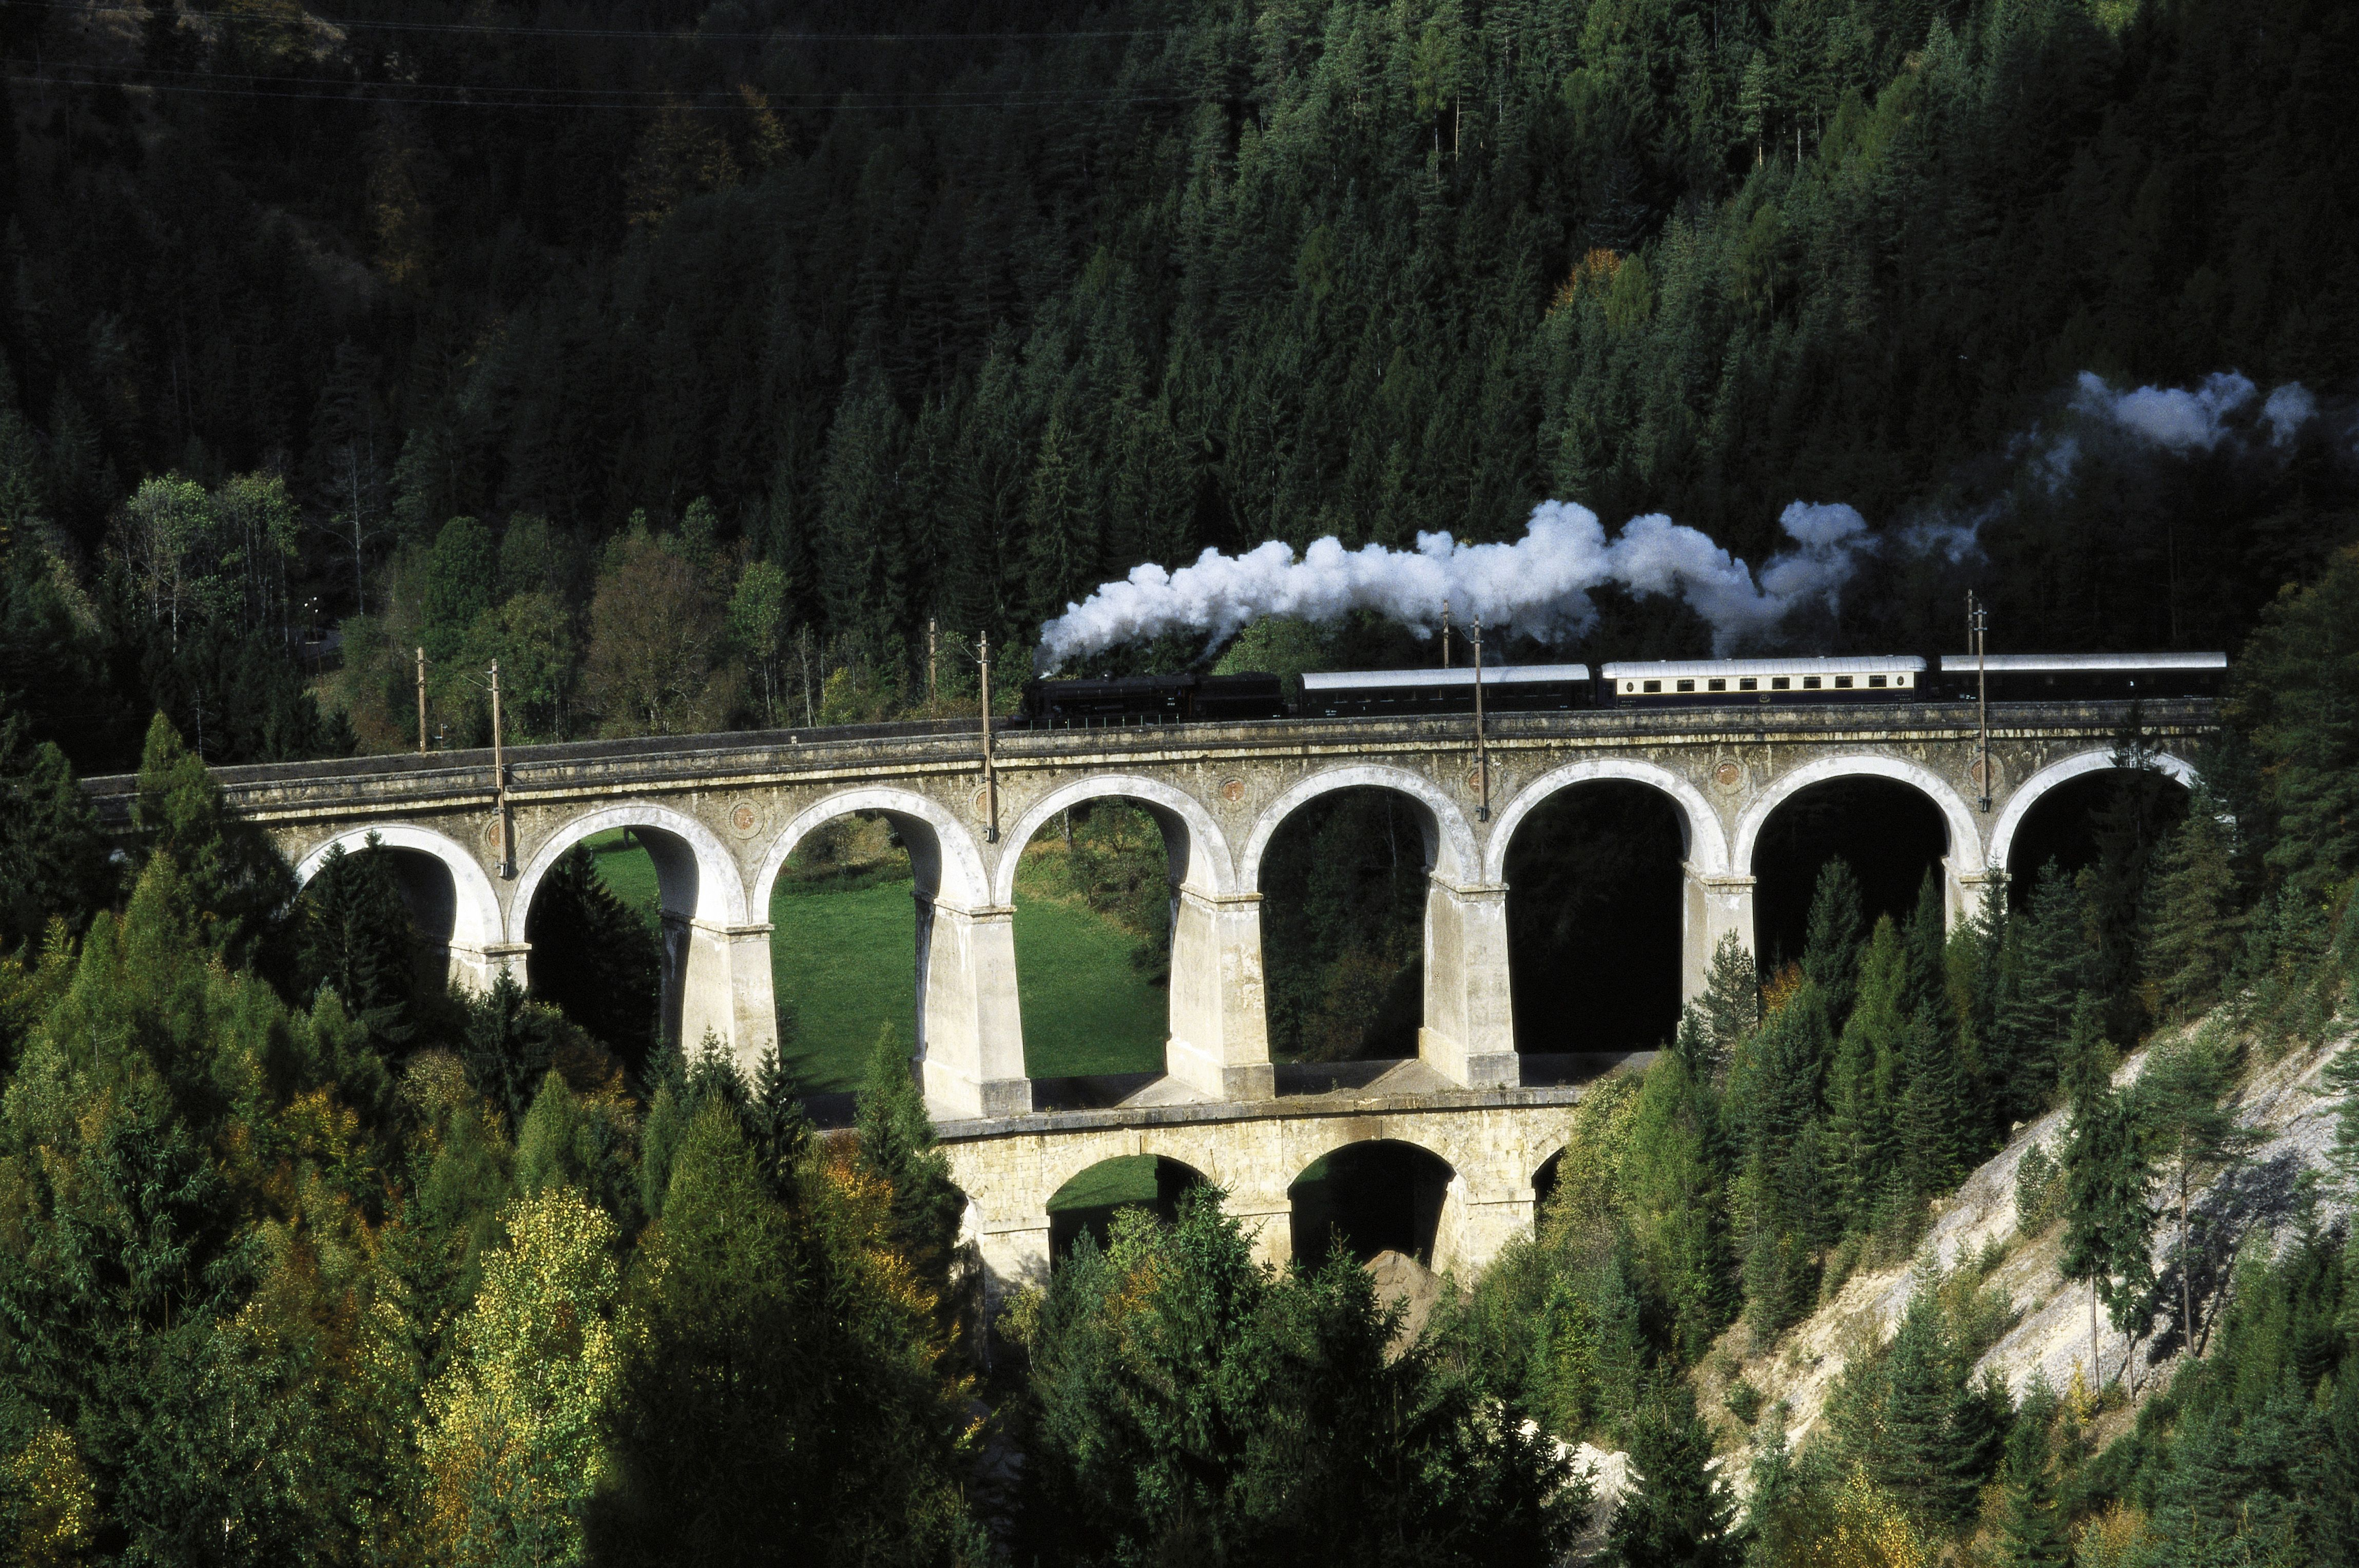 Semmering railway, ancient steamer on viaduct over Kalte Rinne, Semmering, Lower Austria. Photography, about 1999.